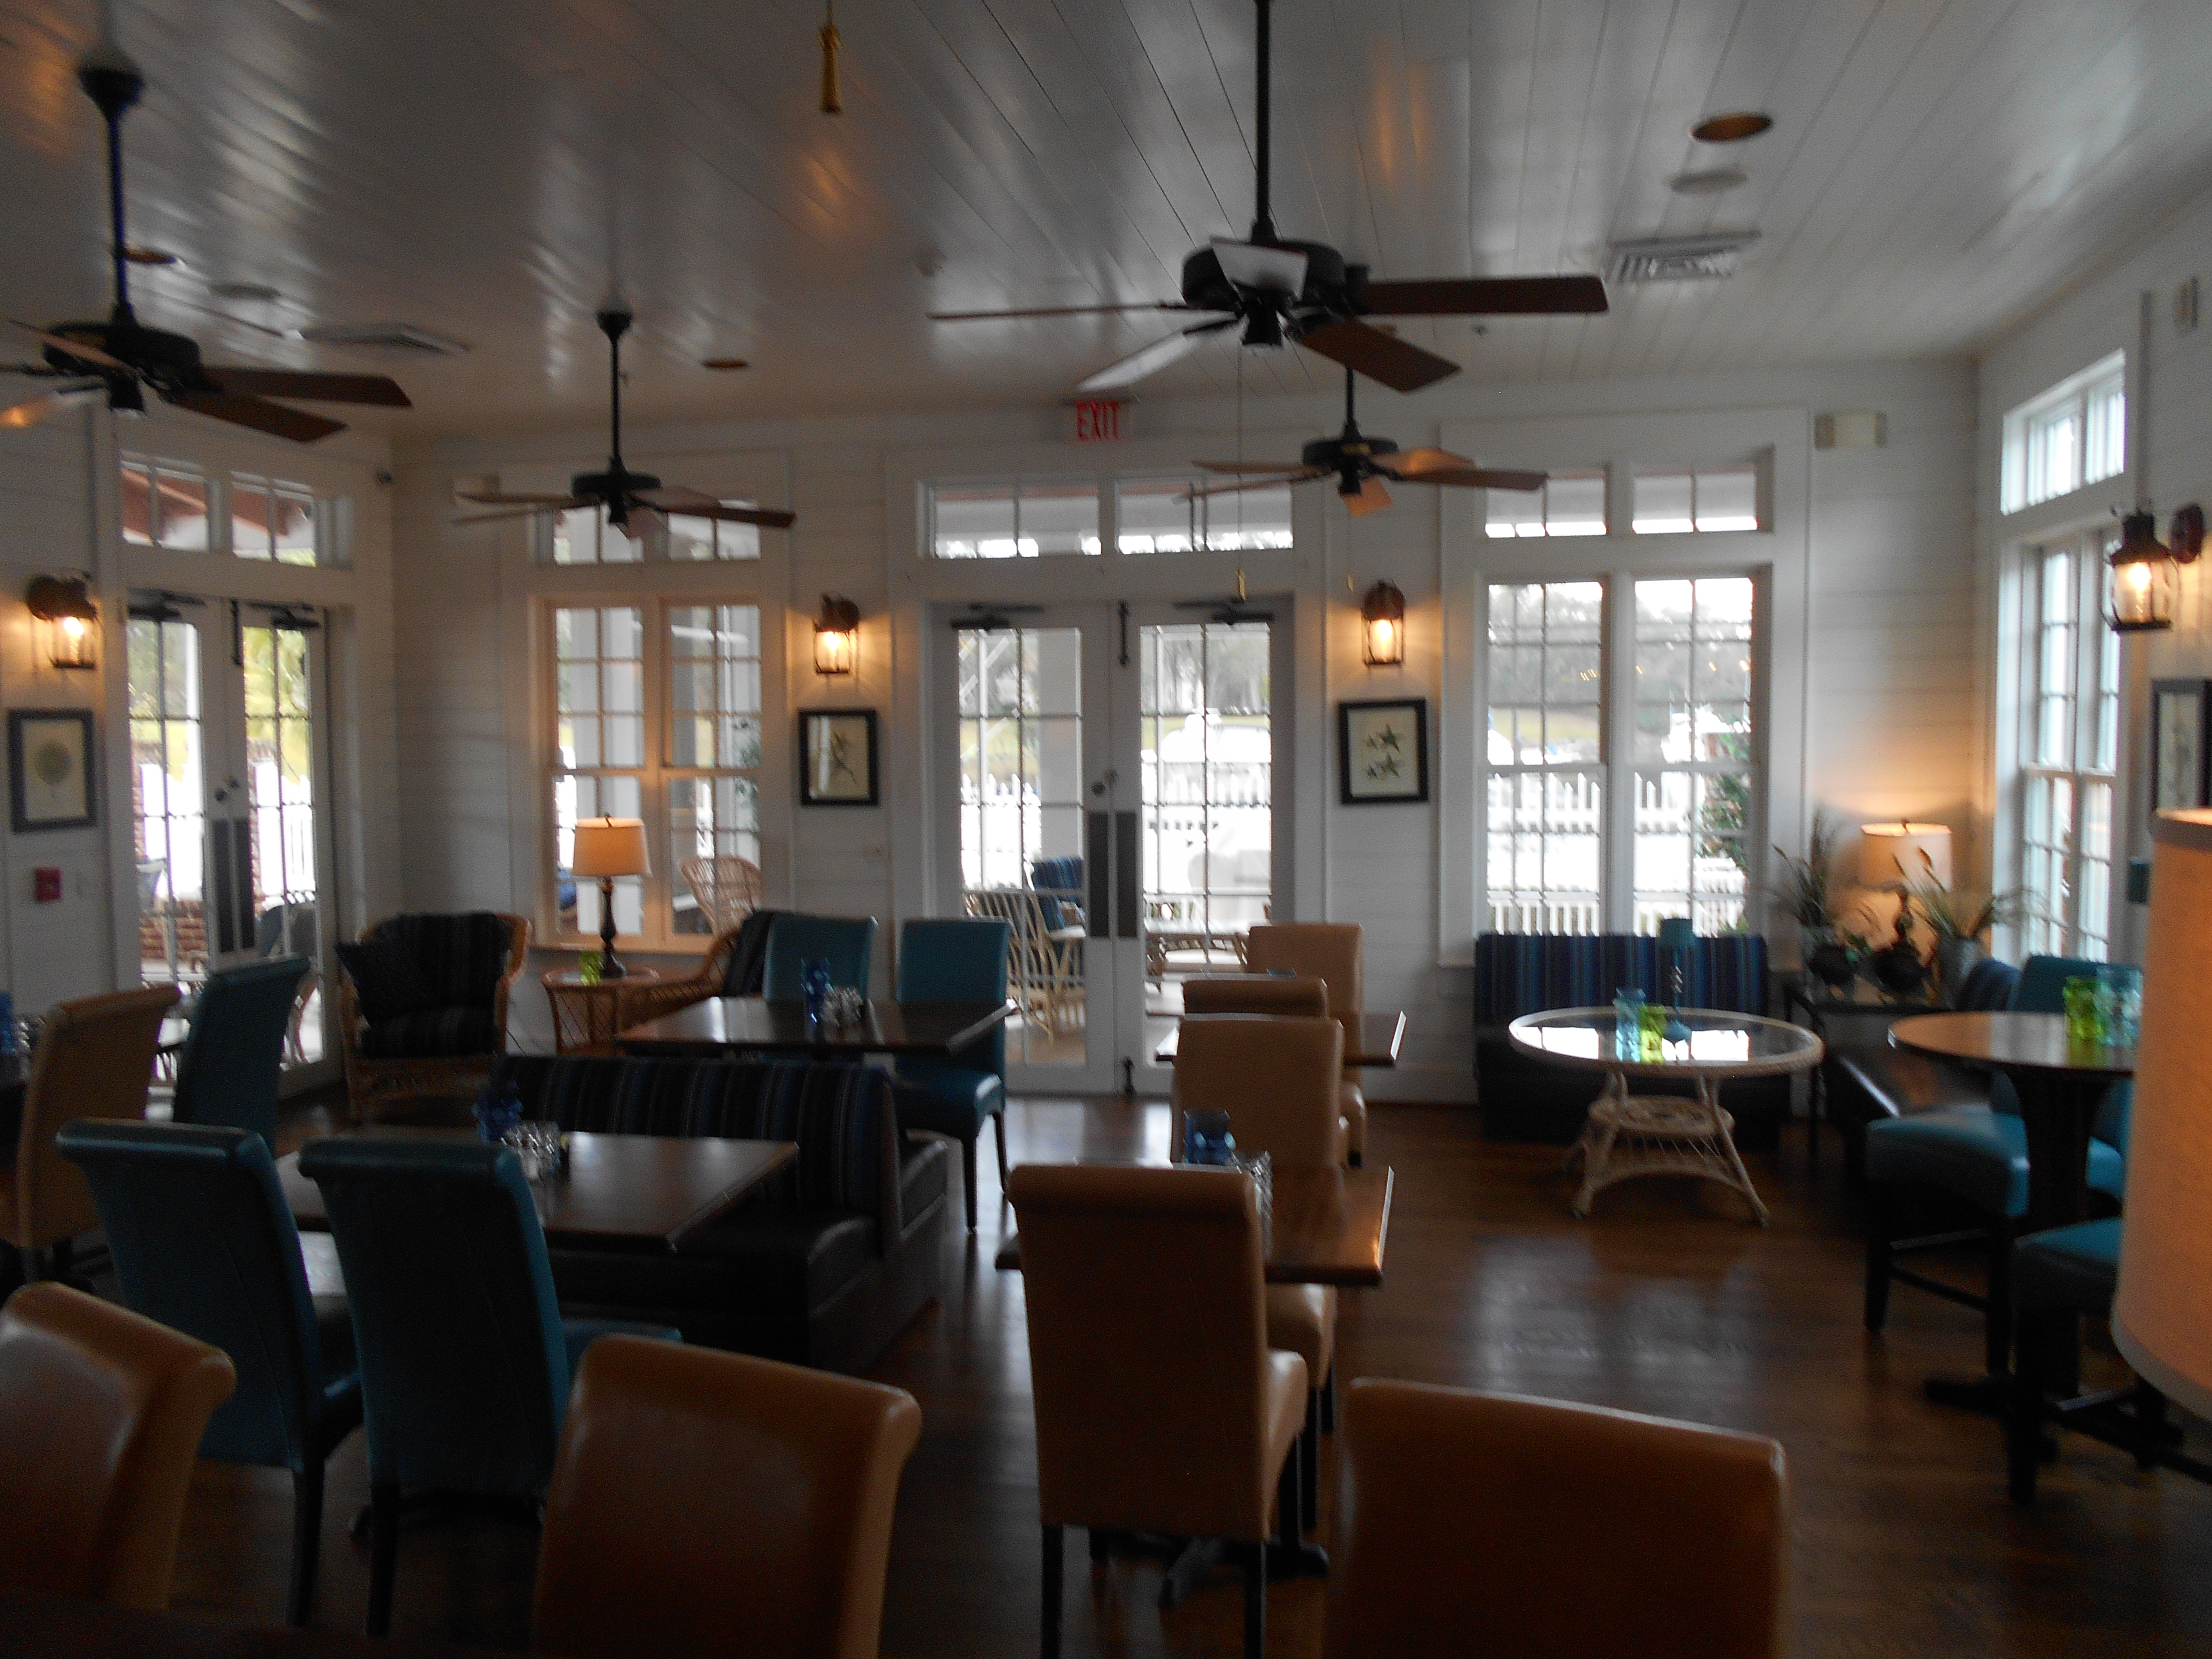 The dining room at Reserve Harbor Yacht Club